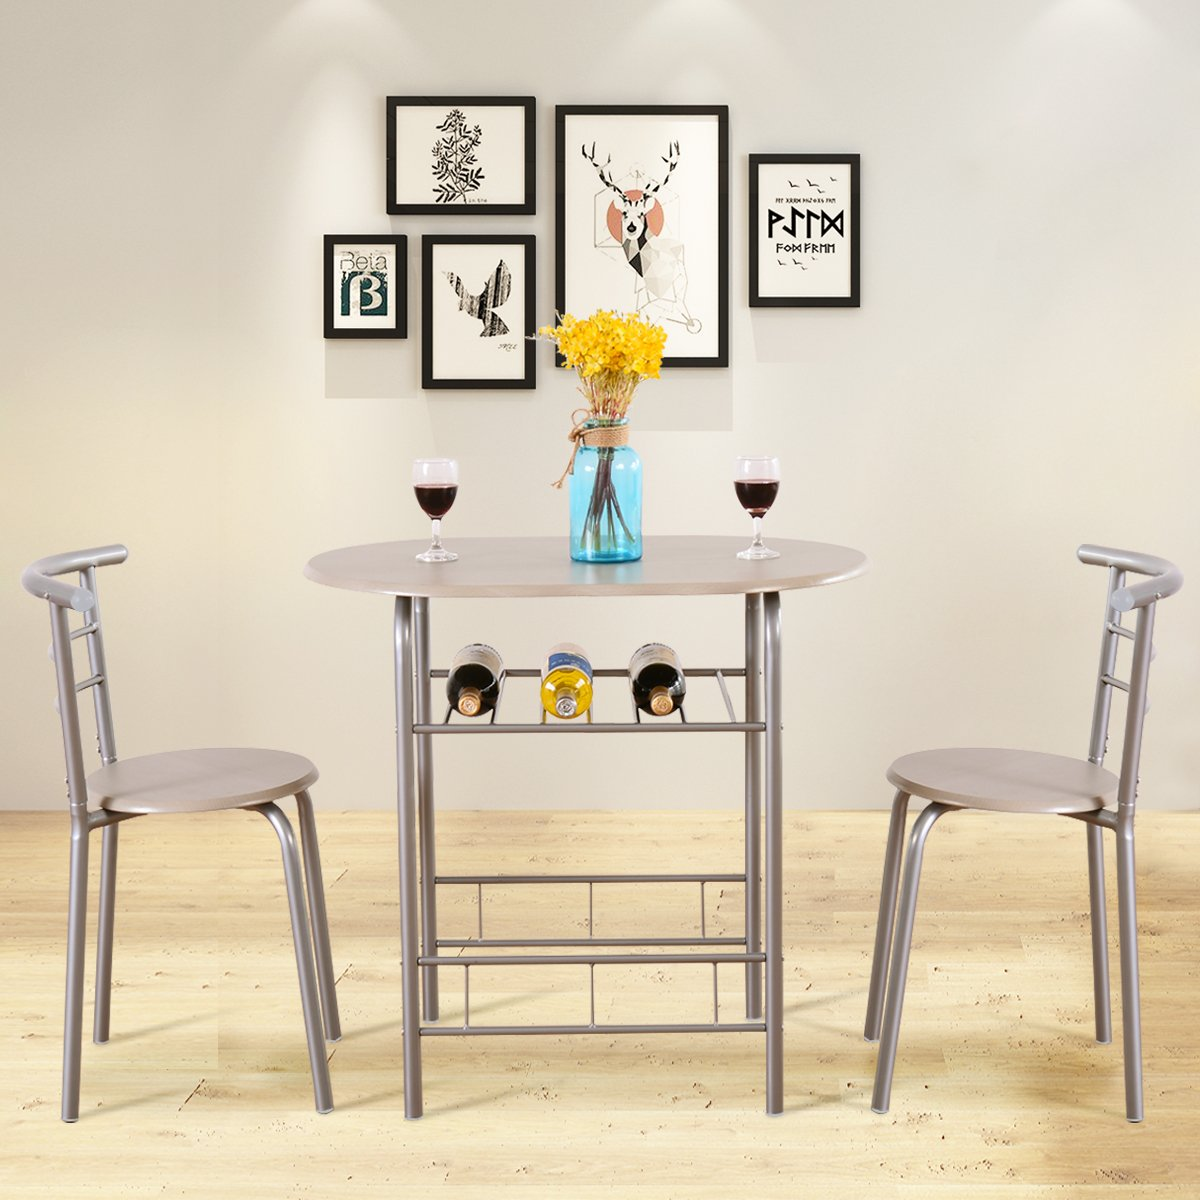 Giantex 3 Piece Dining Set Table 2 Chairs Bistro Pub Home Kitchen Breakfast Furniture by Giantex